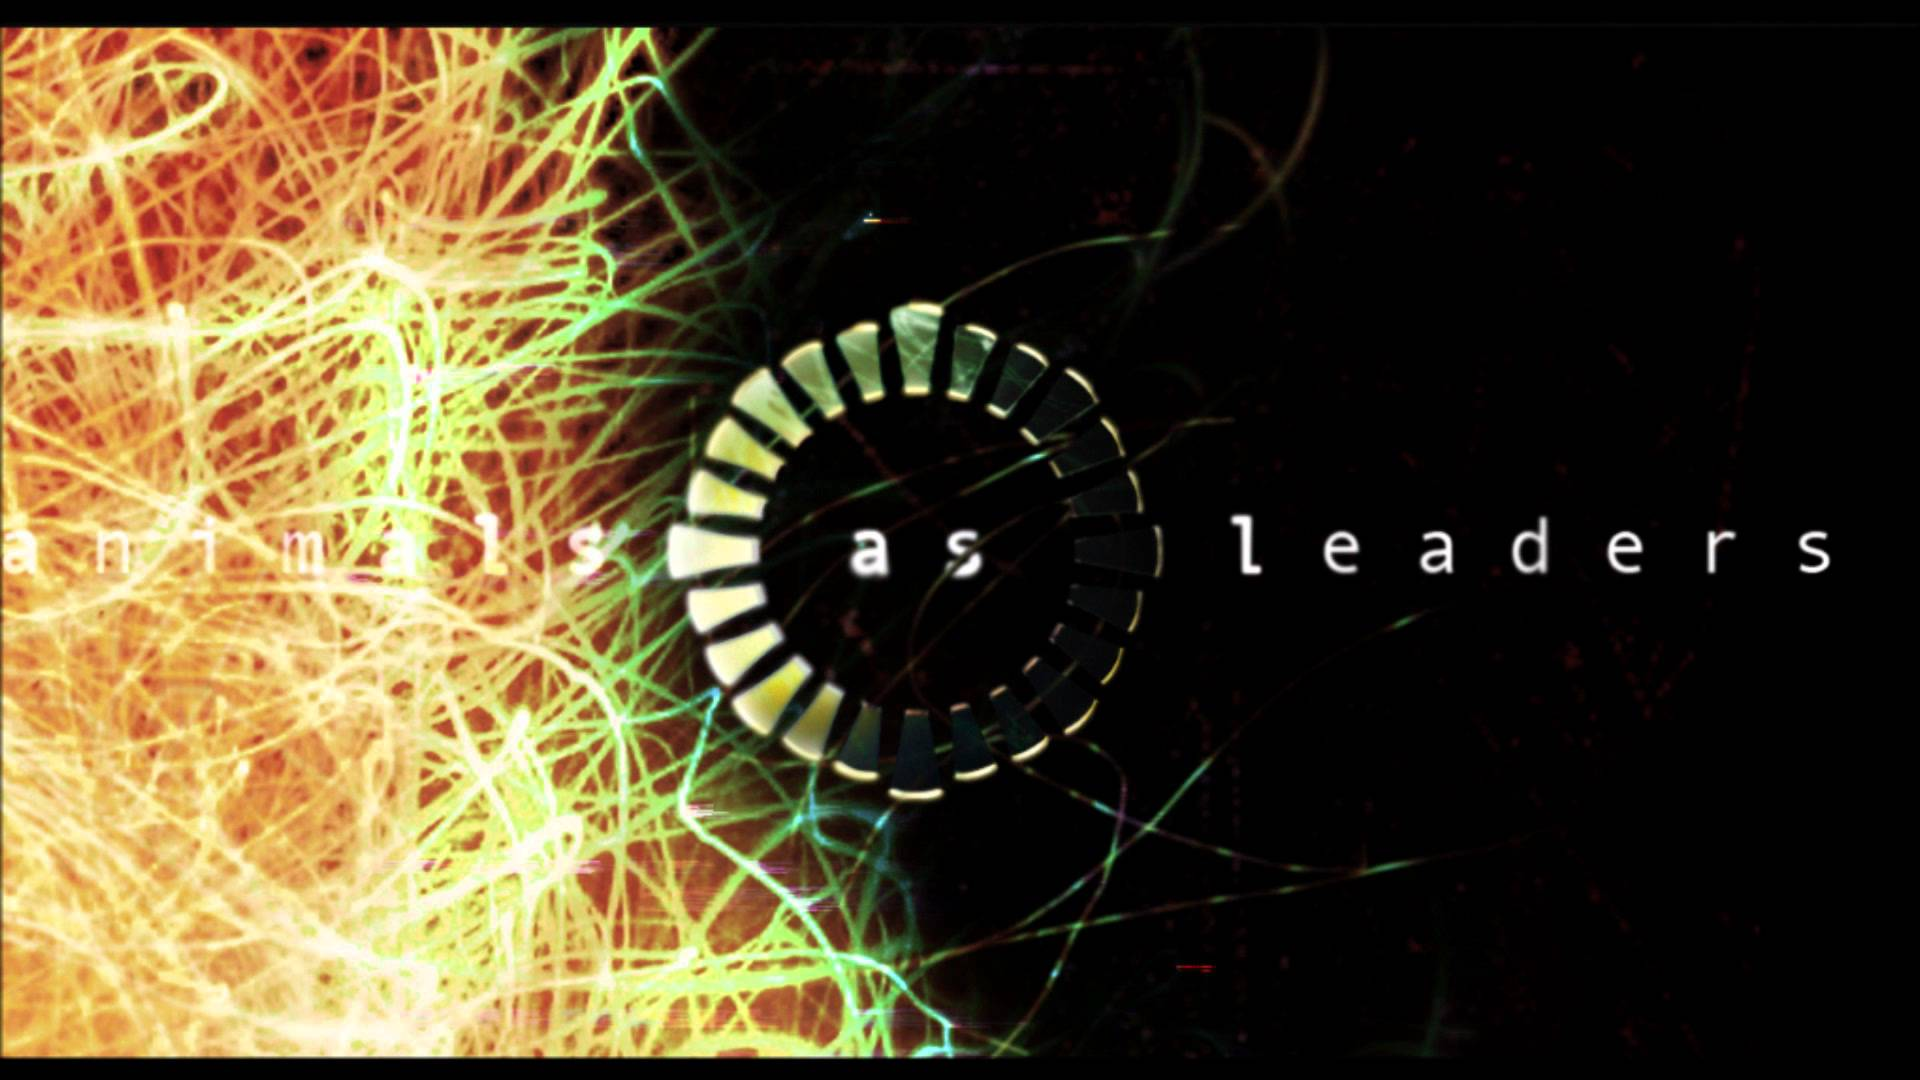 High Resolution Wallpaper   Animals As Leaders 1920x1080 px